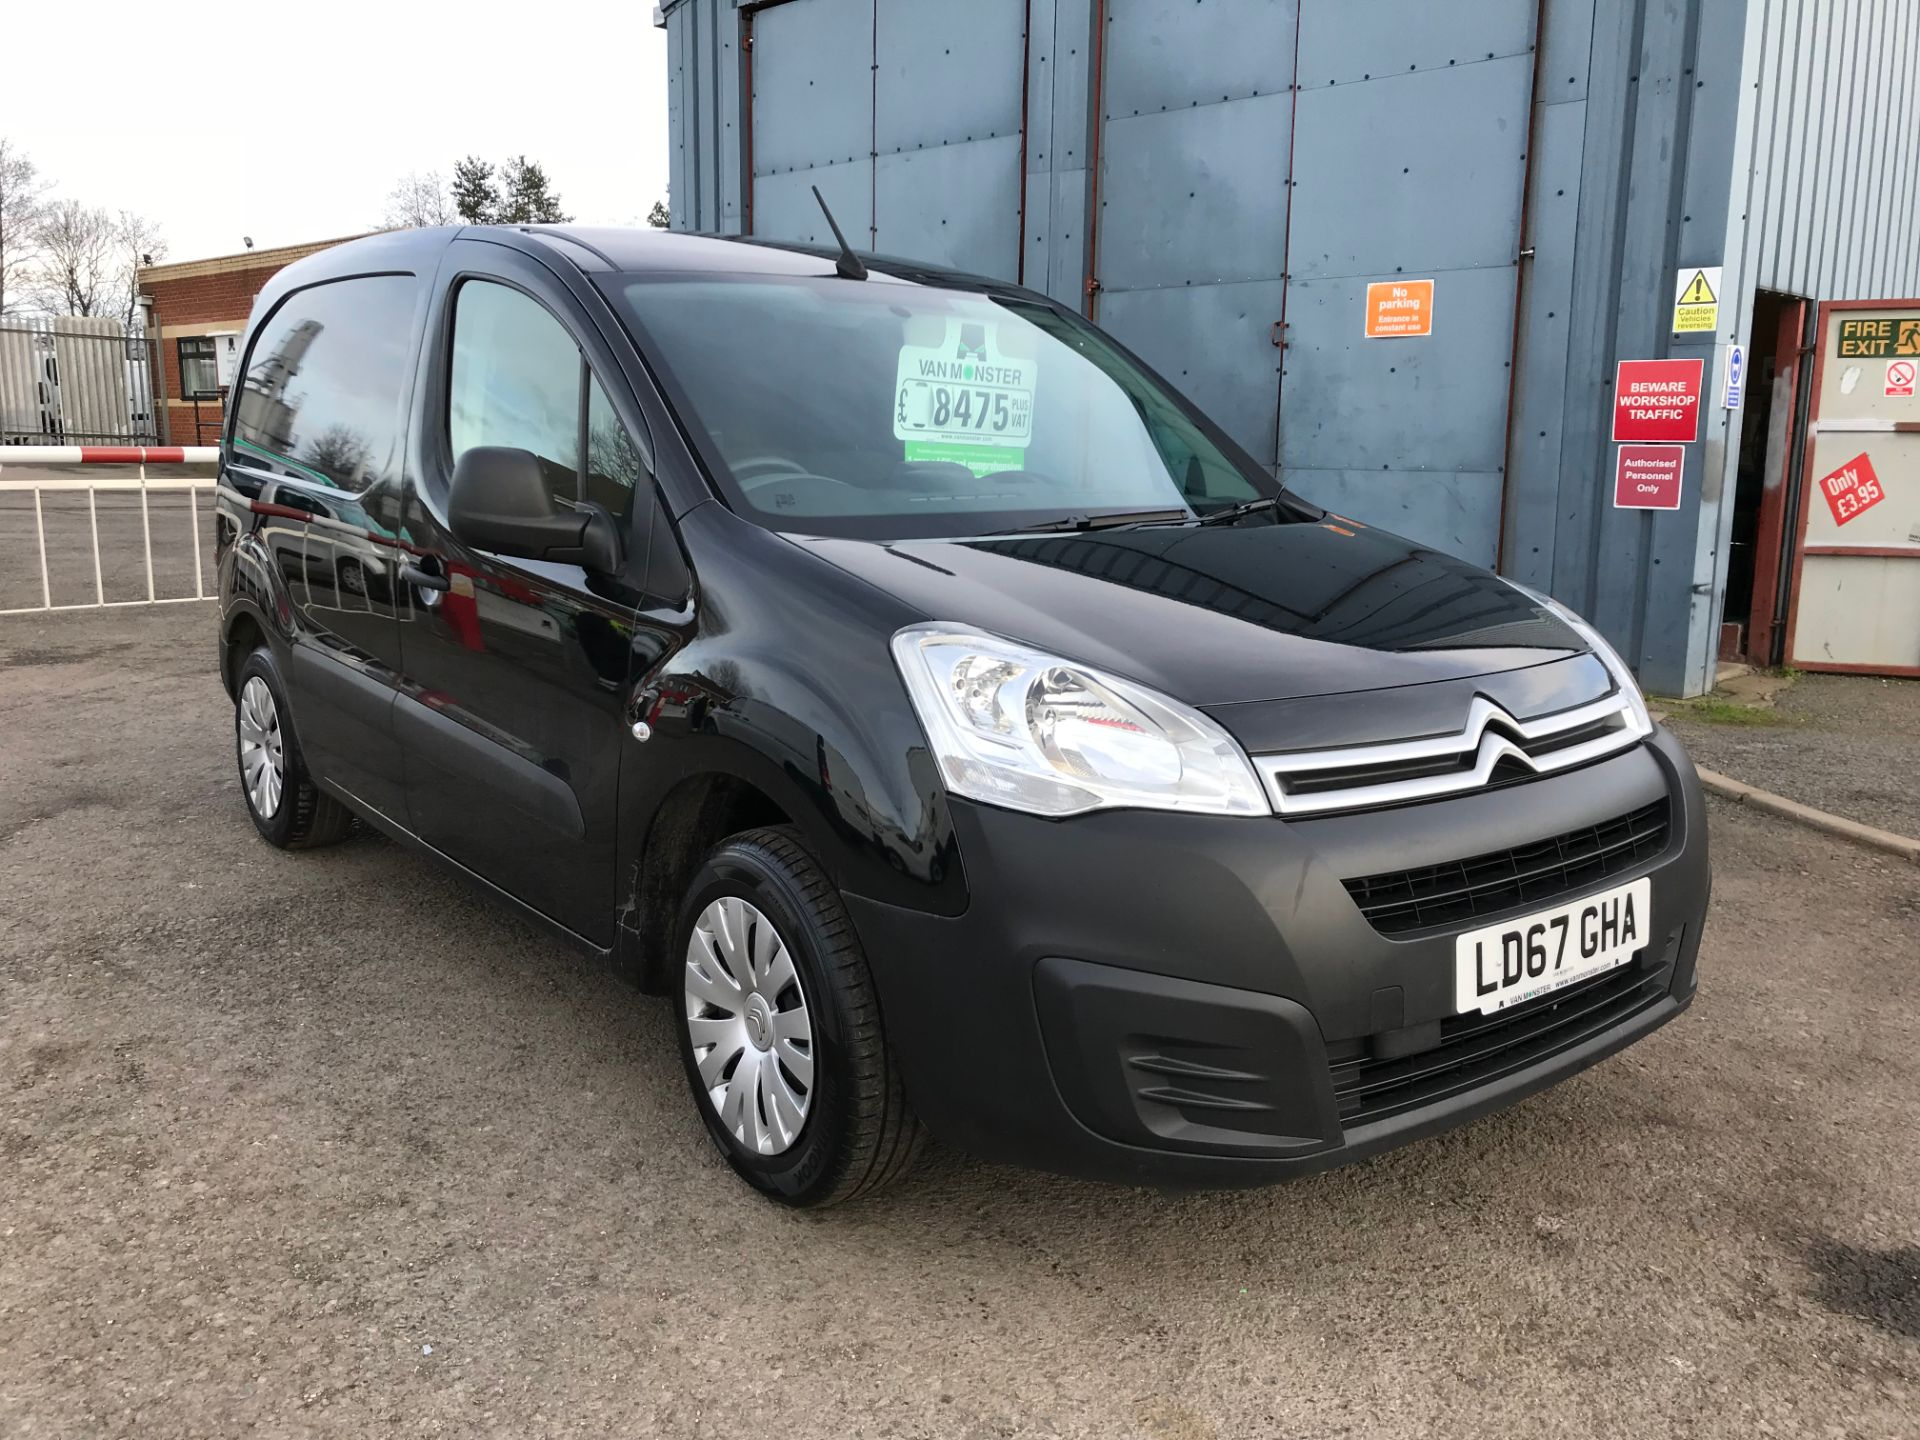 2017 Citroen Berlingo 1.6 Bluehdi 625Kg Enterprise 75Ps (LD67GHA)